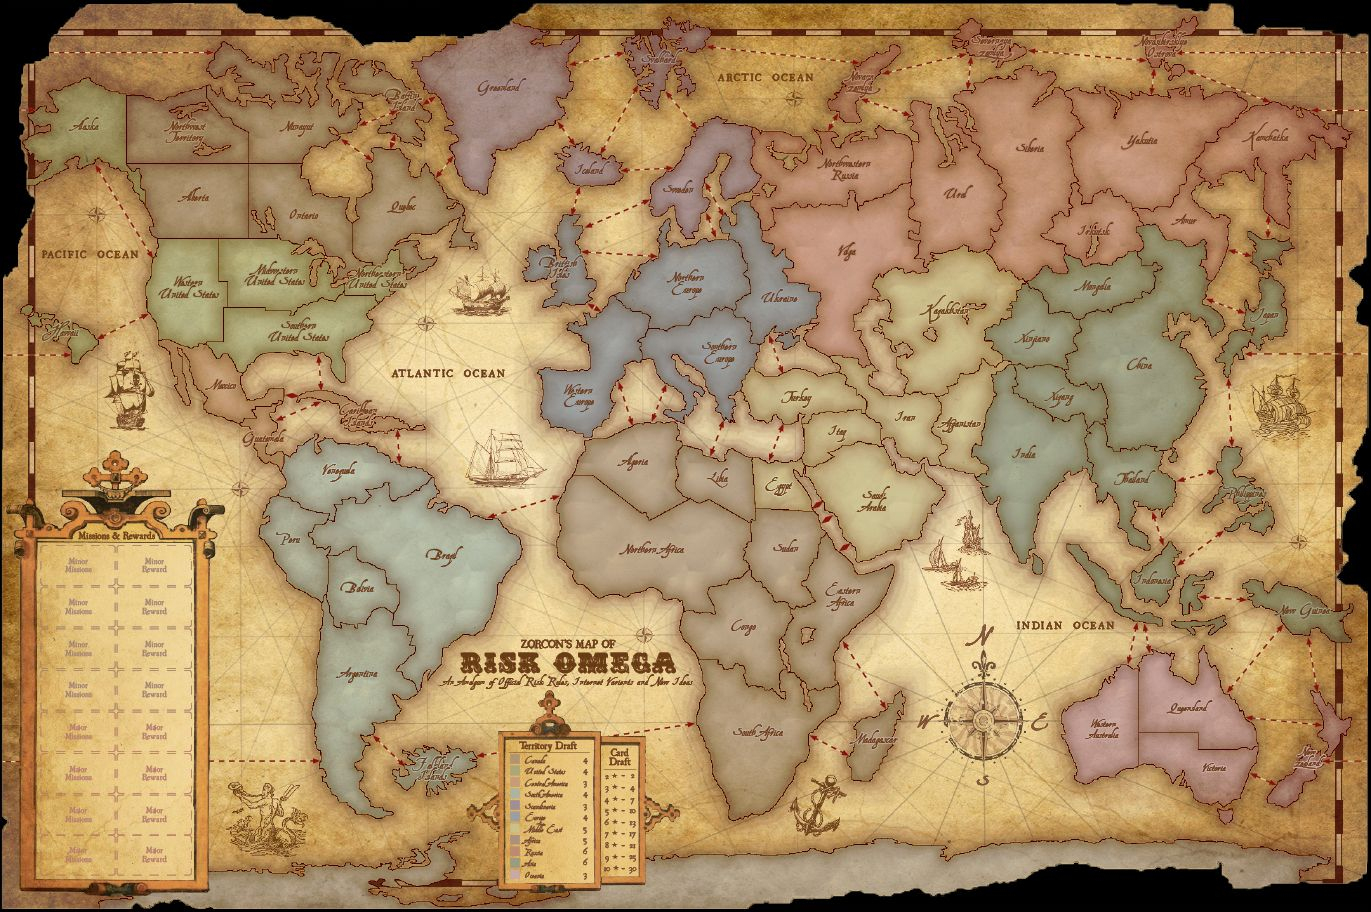 Pinplay Free Online 32 On Play Risk Online | Pinterest | Board - Risk Board Game Printable Map